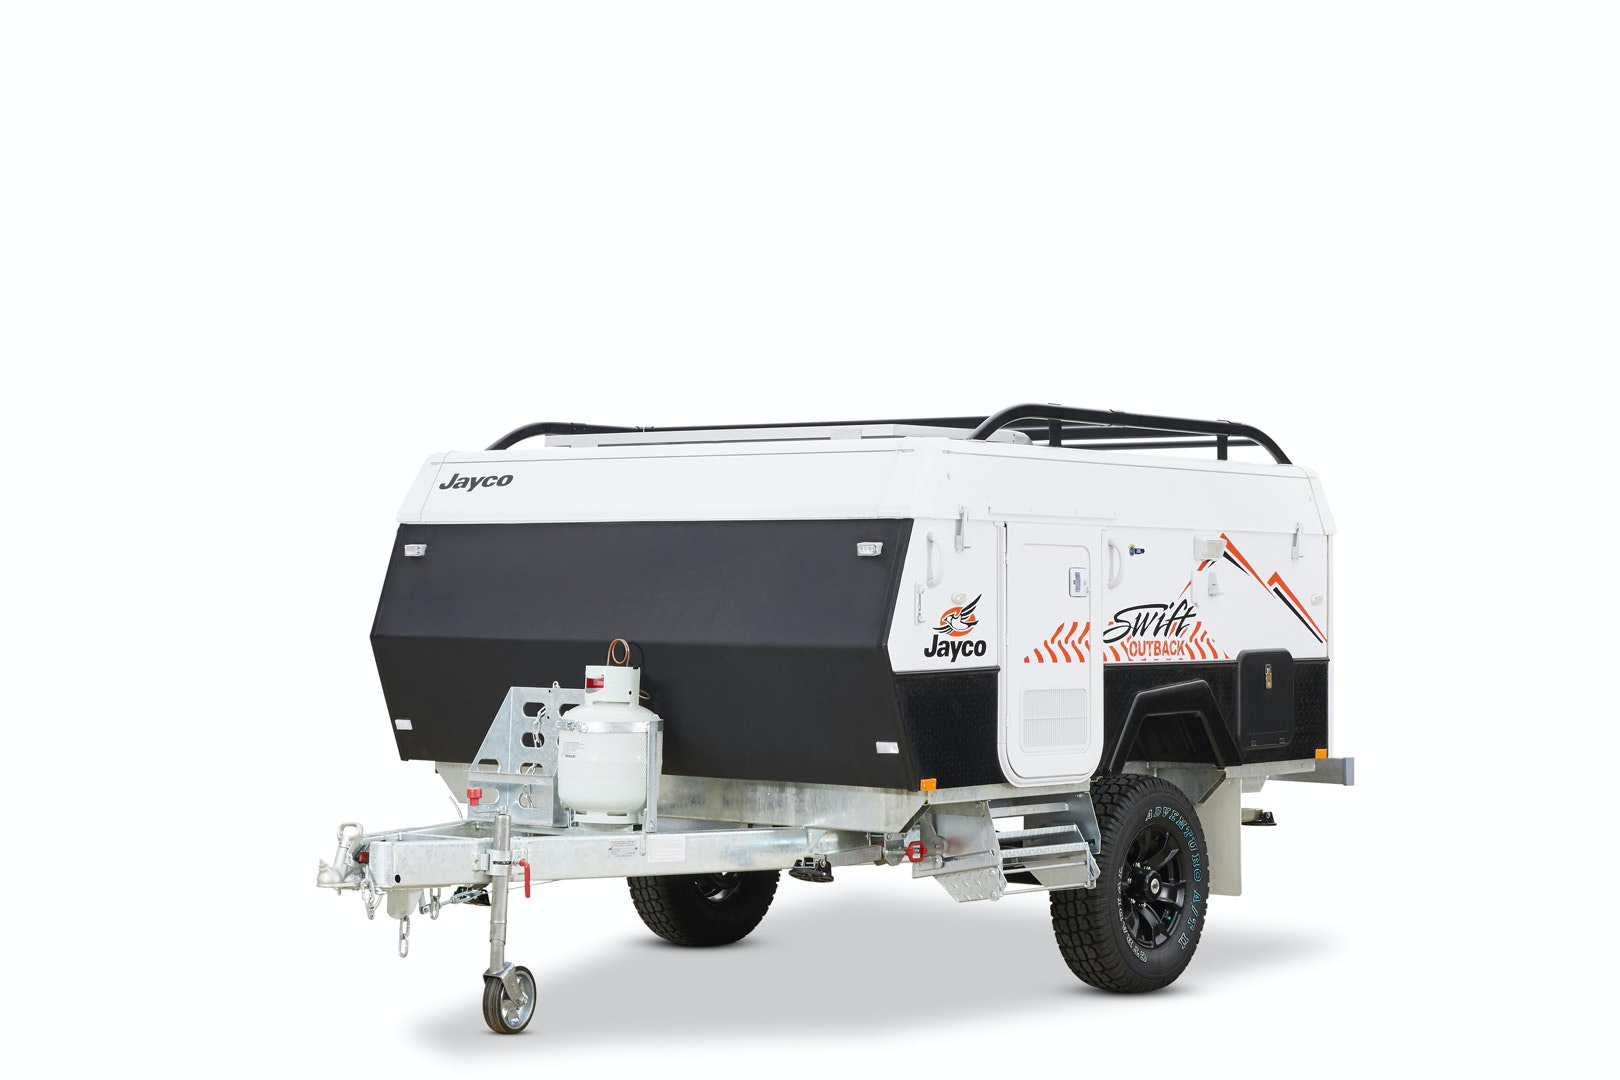 Jayco Swift Camper Trailer